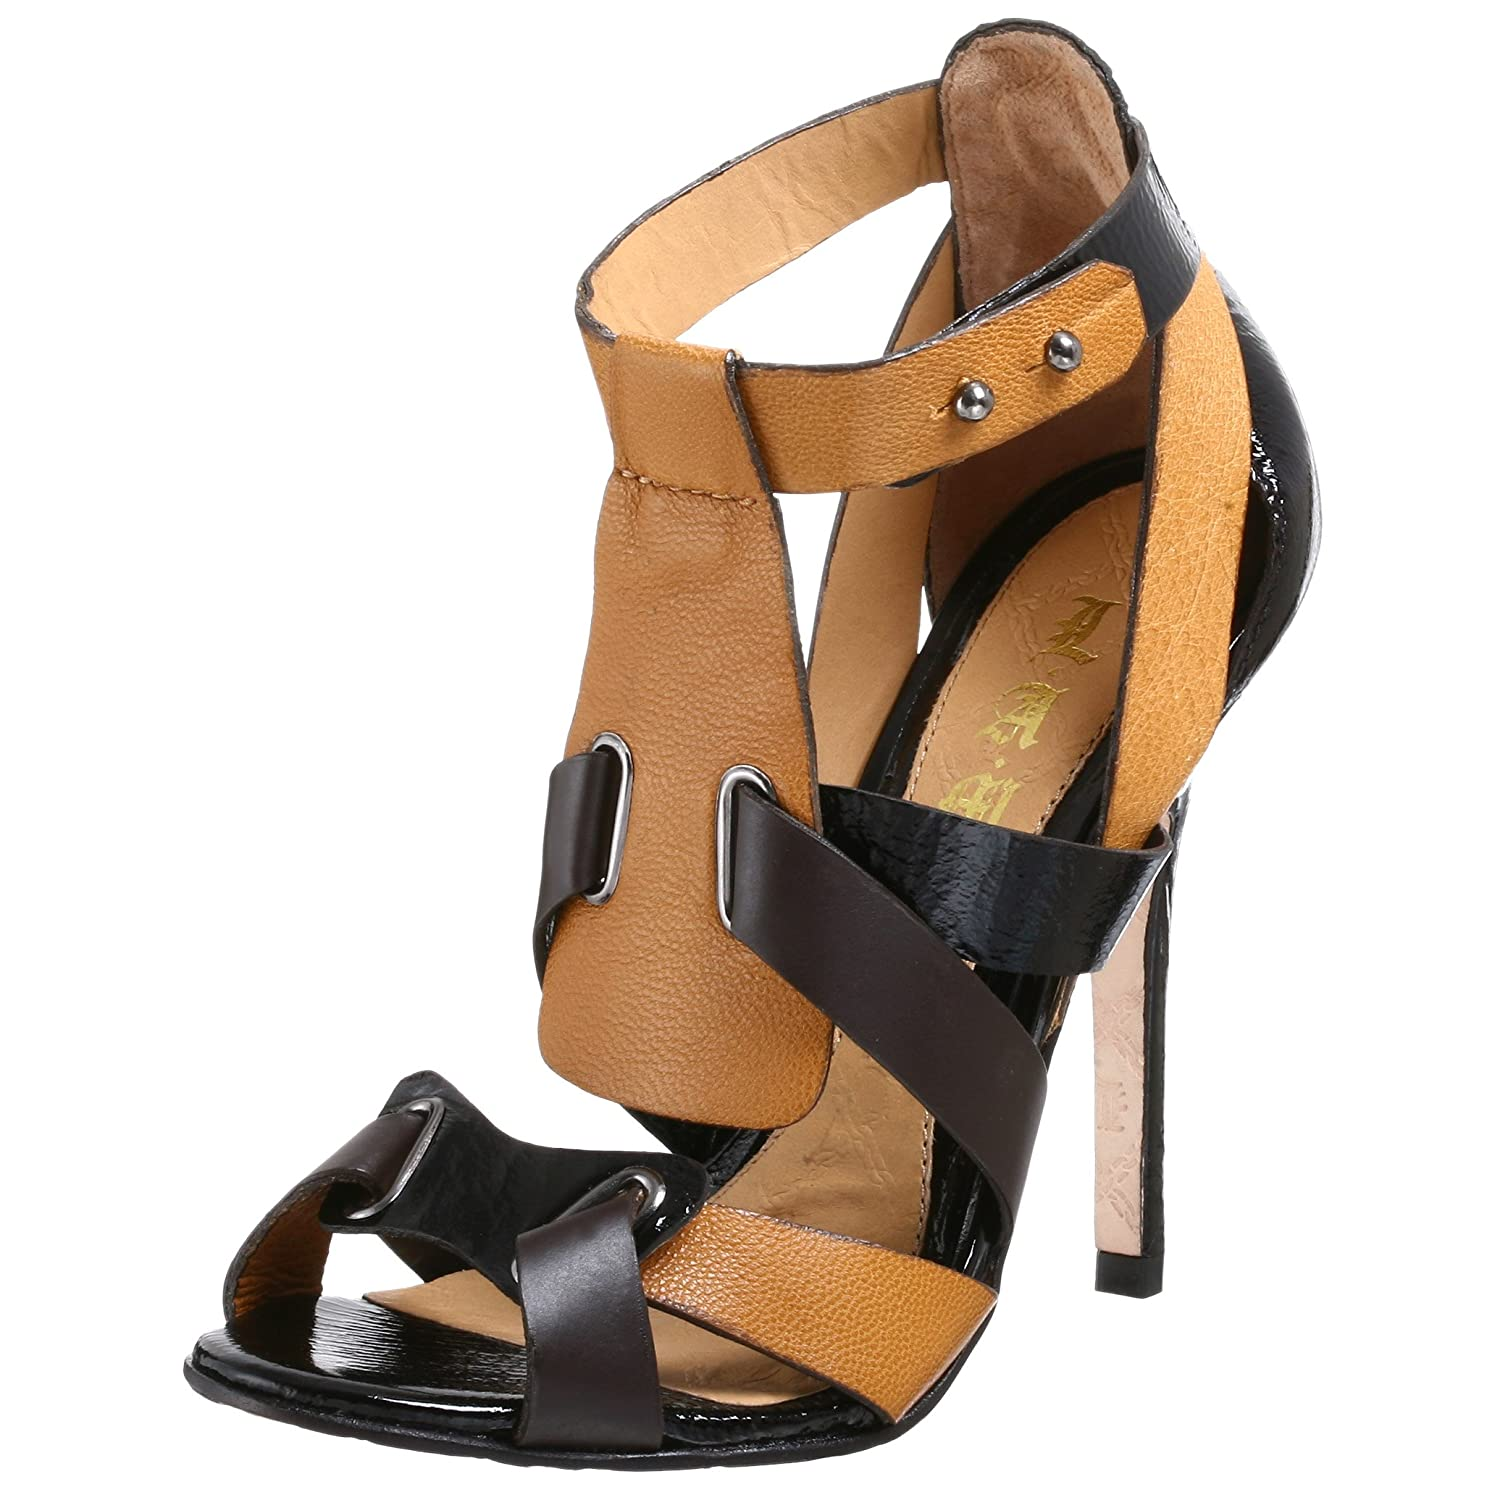 Endless.com: L.A.M.B. Women's Ely Sandal: Sandals - Free Overnight Shipping & Return Shipping from endless.com